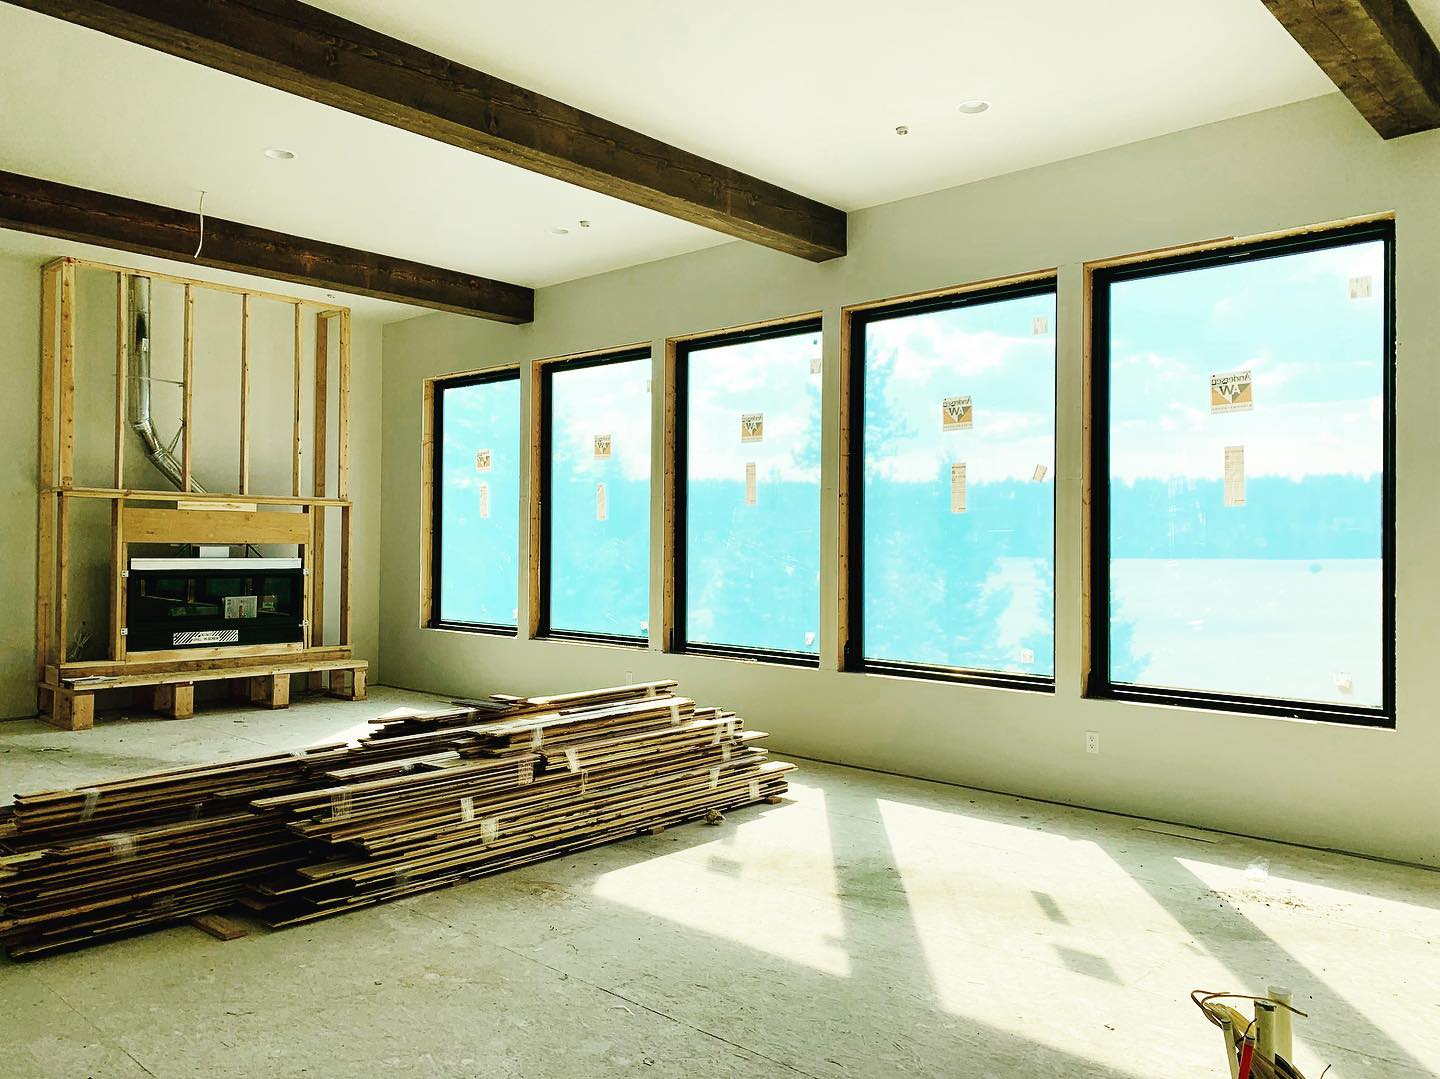 Spec house windows are fantastic. The cabinets and fireplace to come together next week!  295 Bowdrie Trail, Whitefish whitefish custom home builder